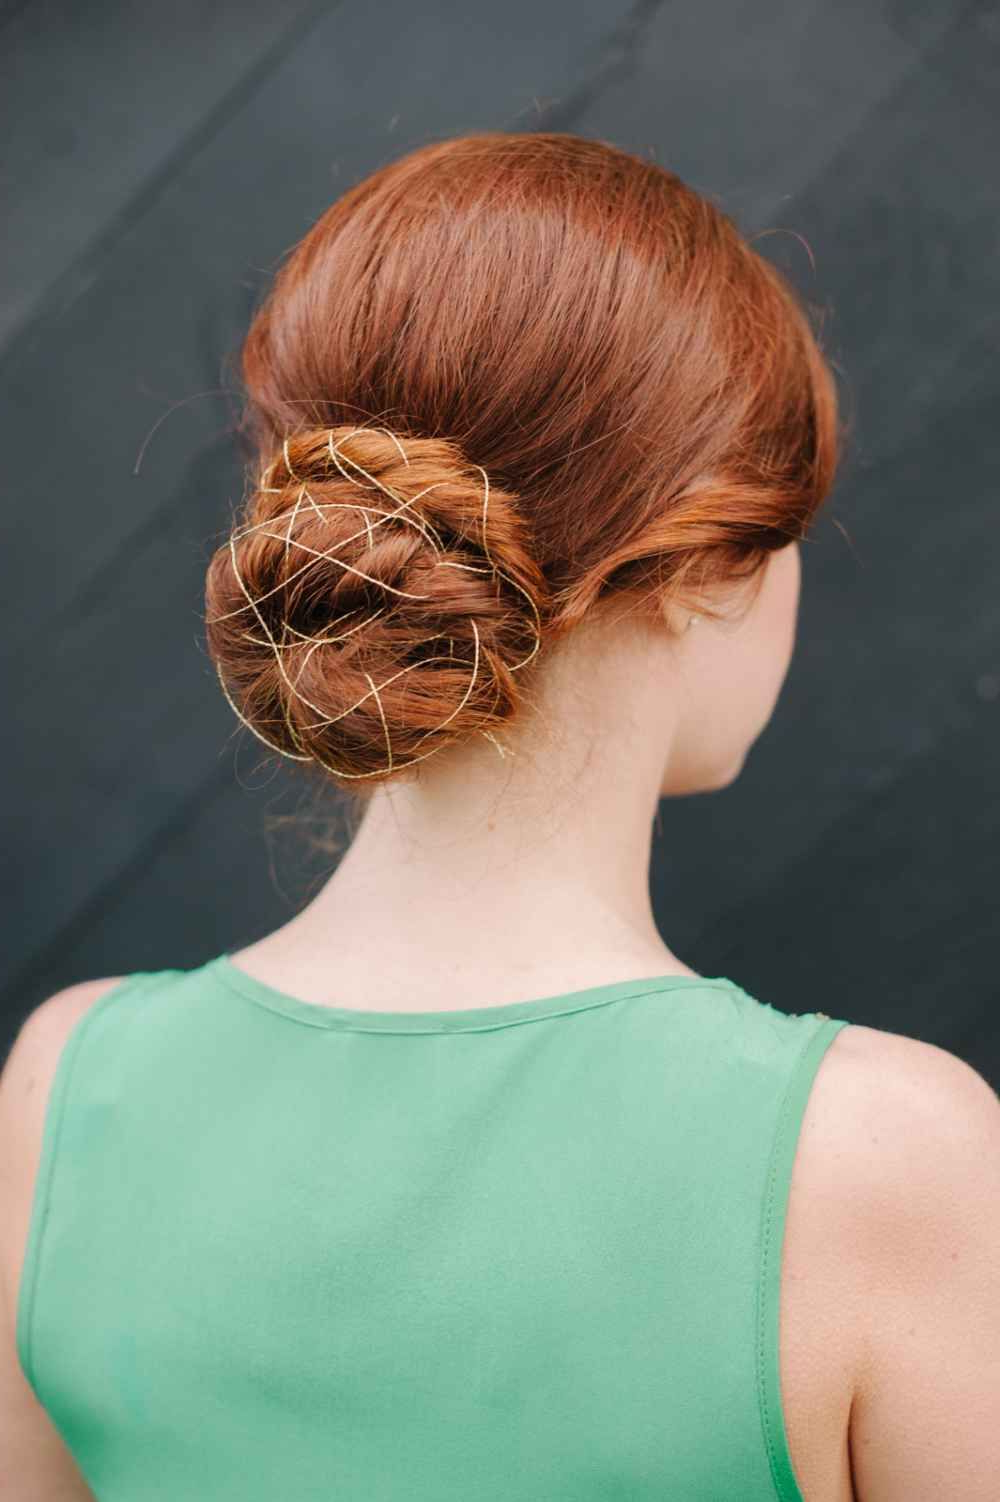 Popular Bedazzled Chic Hairstyles For Wedding Inside Bedazzled Bun. Thread A Bobby Pin With Your Choice Of Thread, Etc (Gallery 8 of 20)